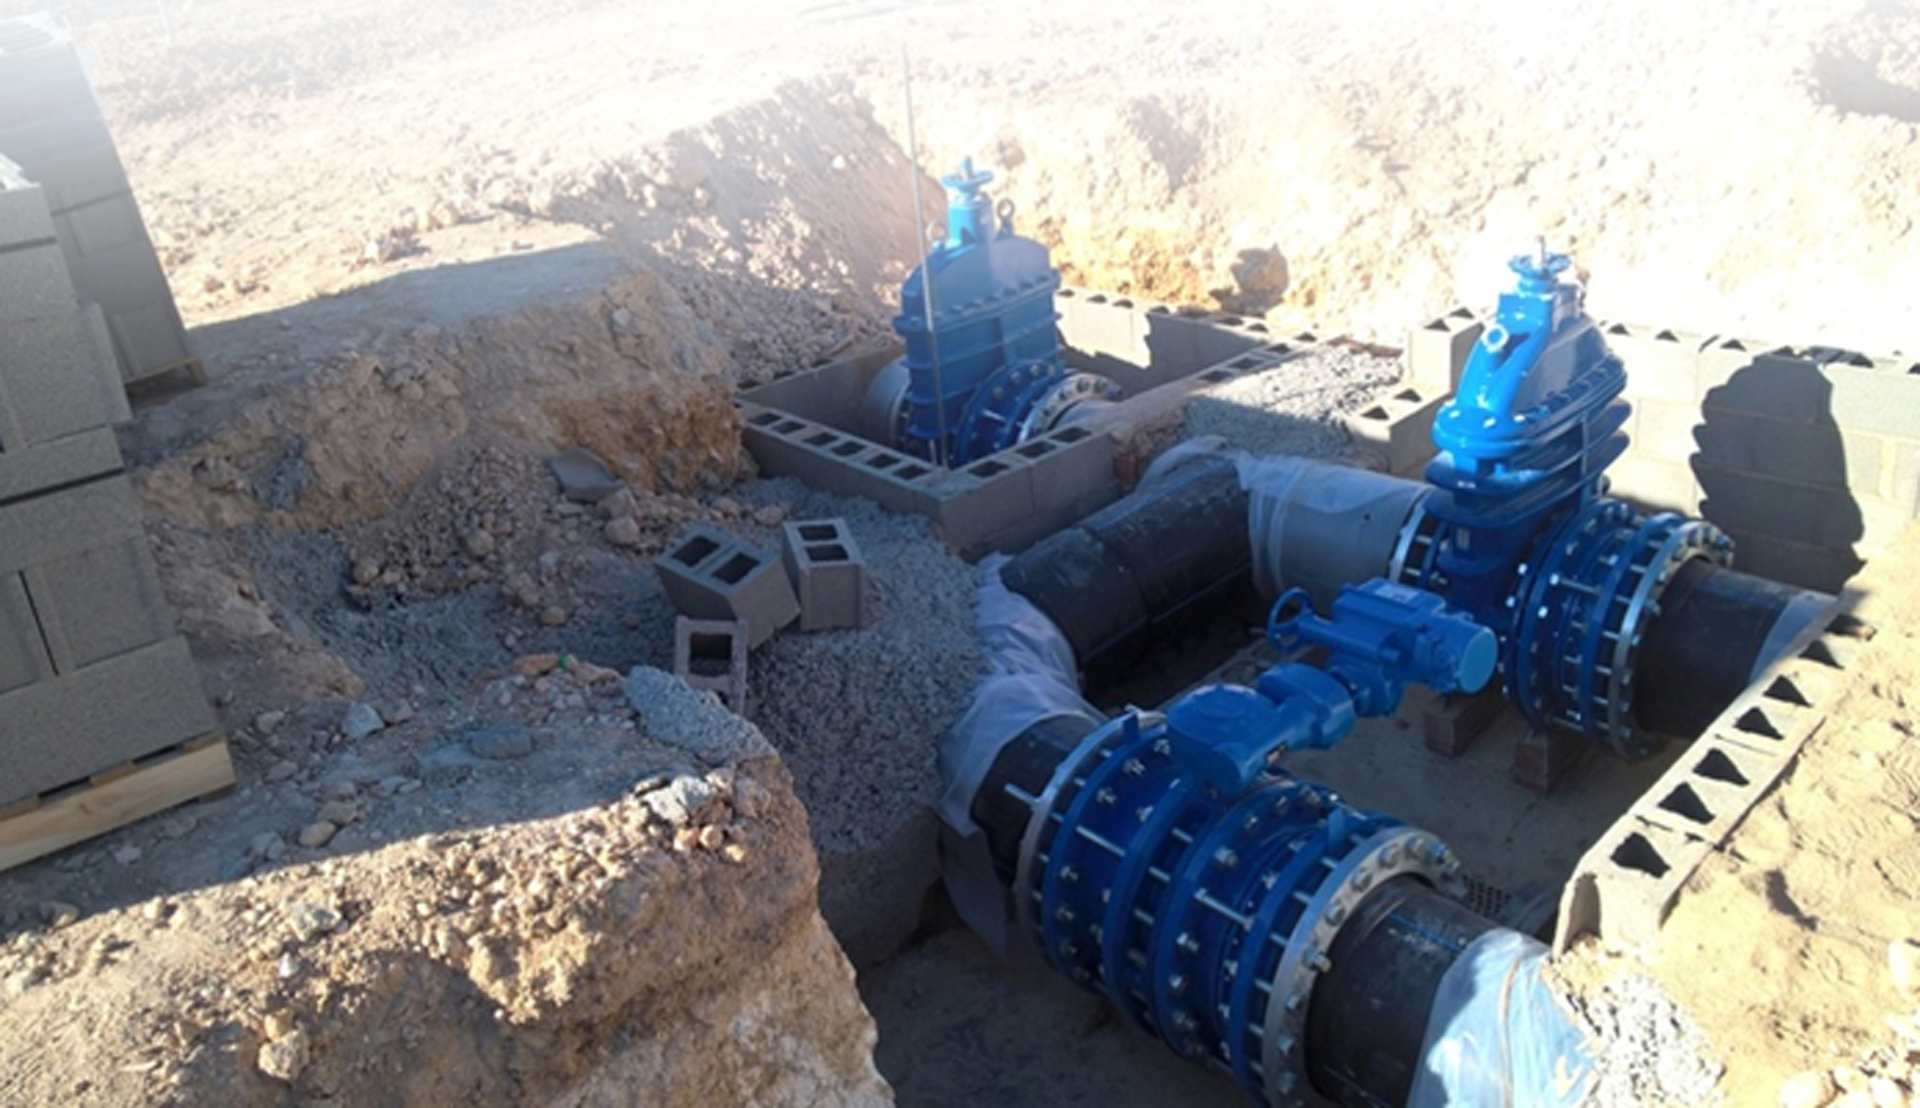 Home Page Caprari Pumping Power Submersible Water Pump Troubleshooting Valencia System Electric 12